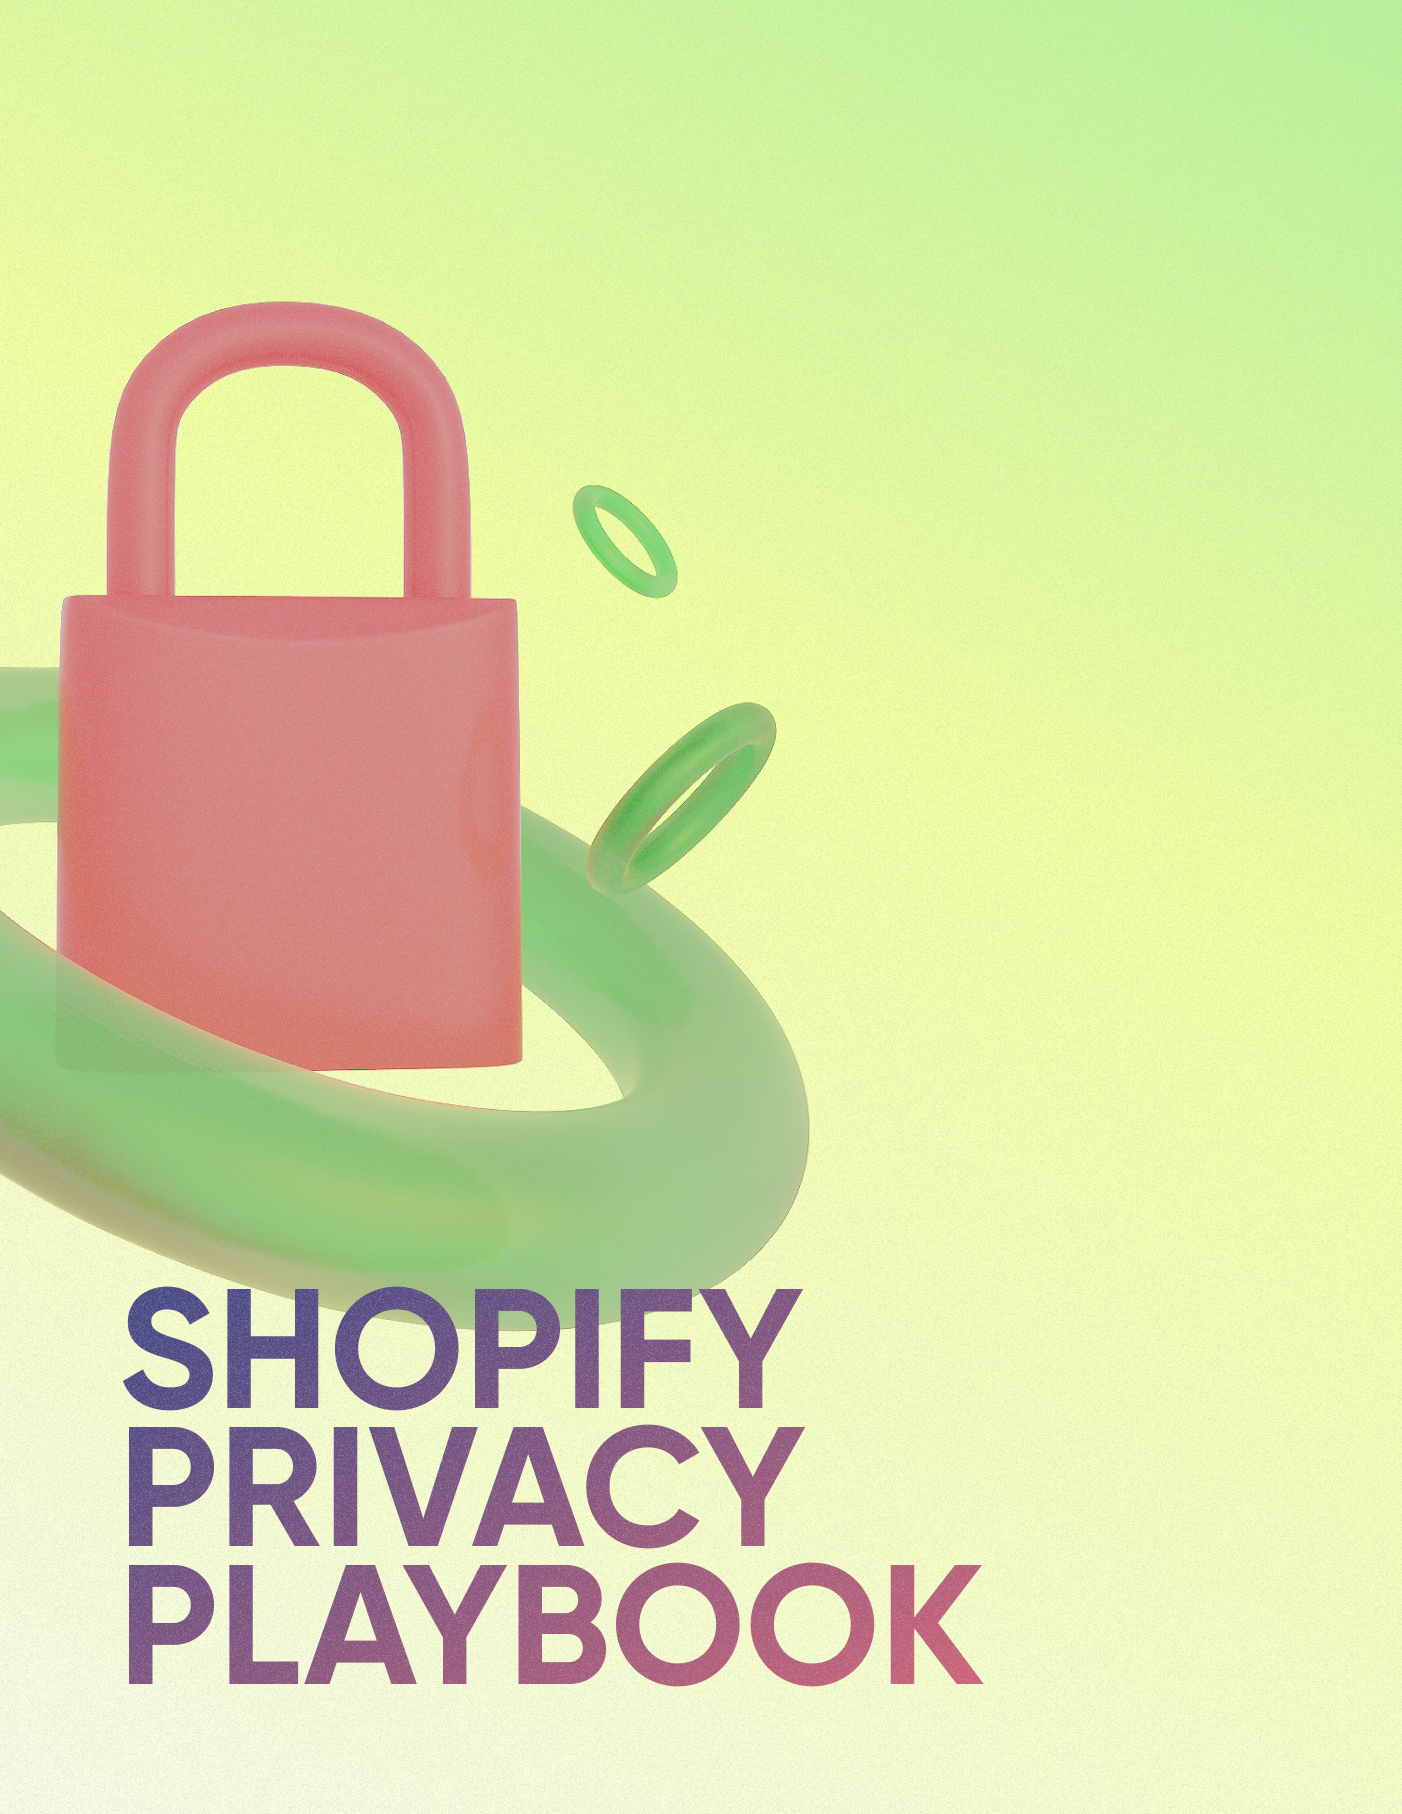 The Shopify Privacy Playbook by Enzuzo